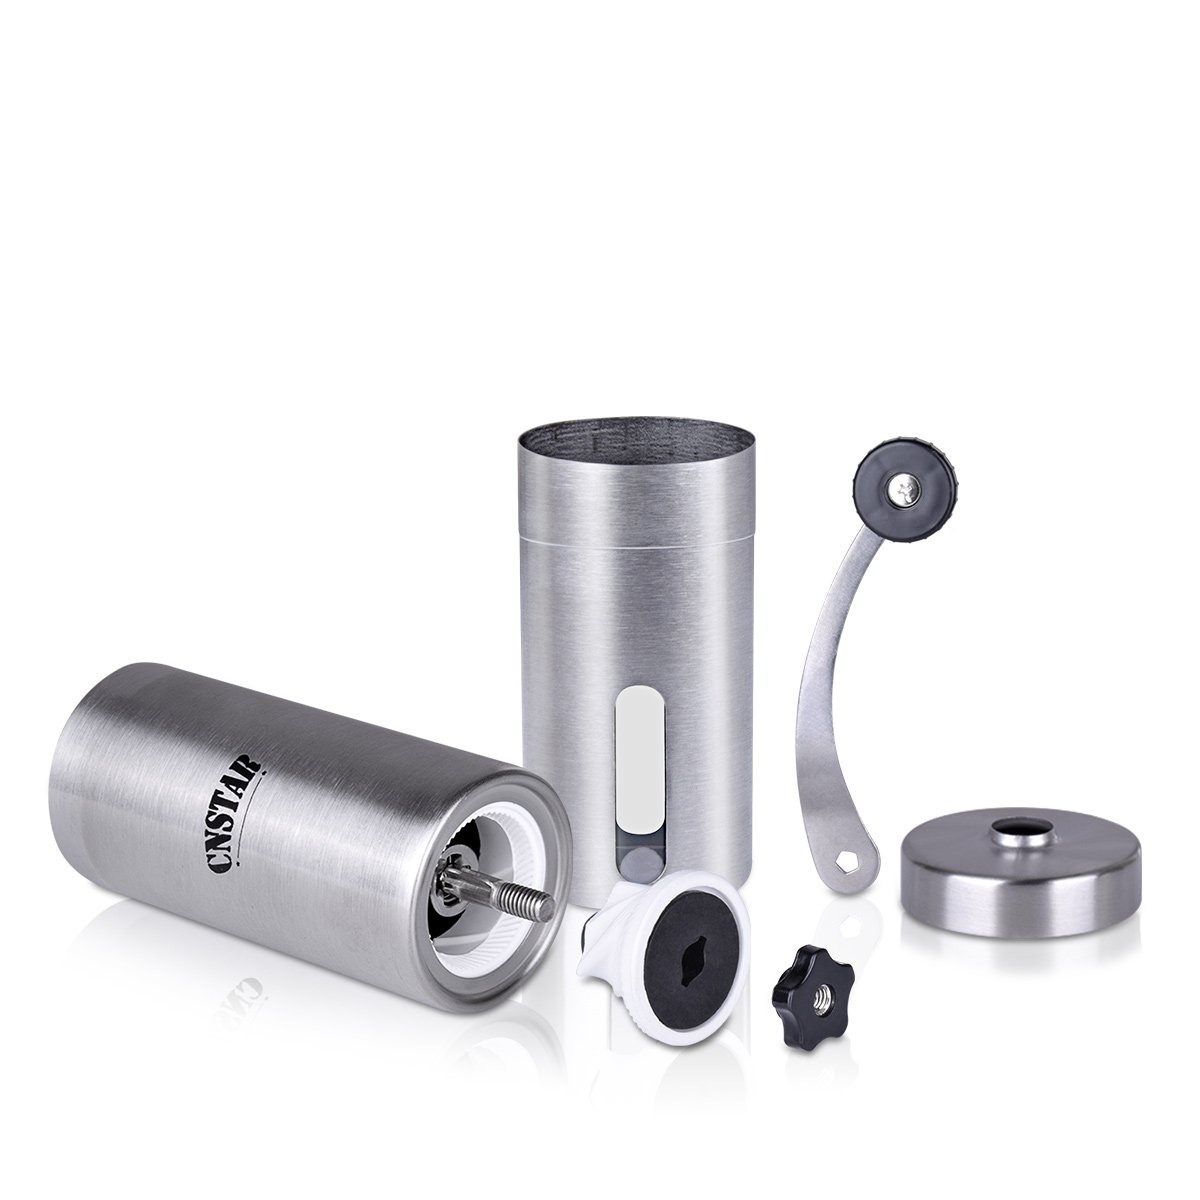 Hand Burr Manual Coffee Grinder for Precision Brewing Stainless Steel CNSTAR Coffee Bean Grinder Conical Burr Mill Hand Crank